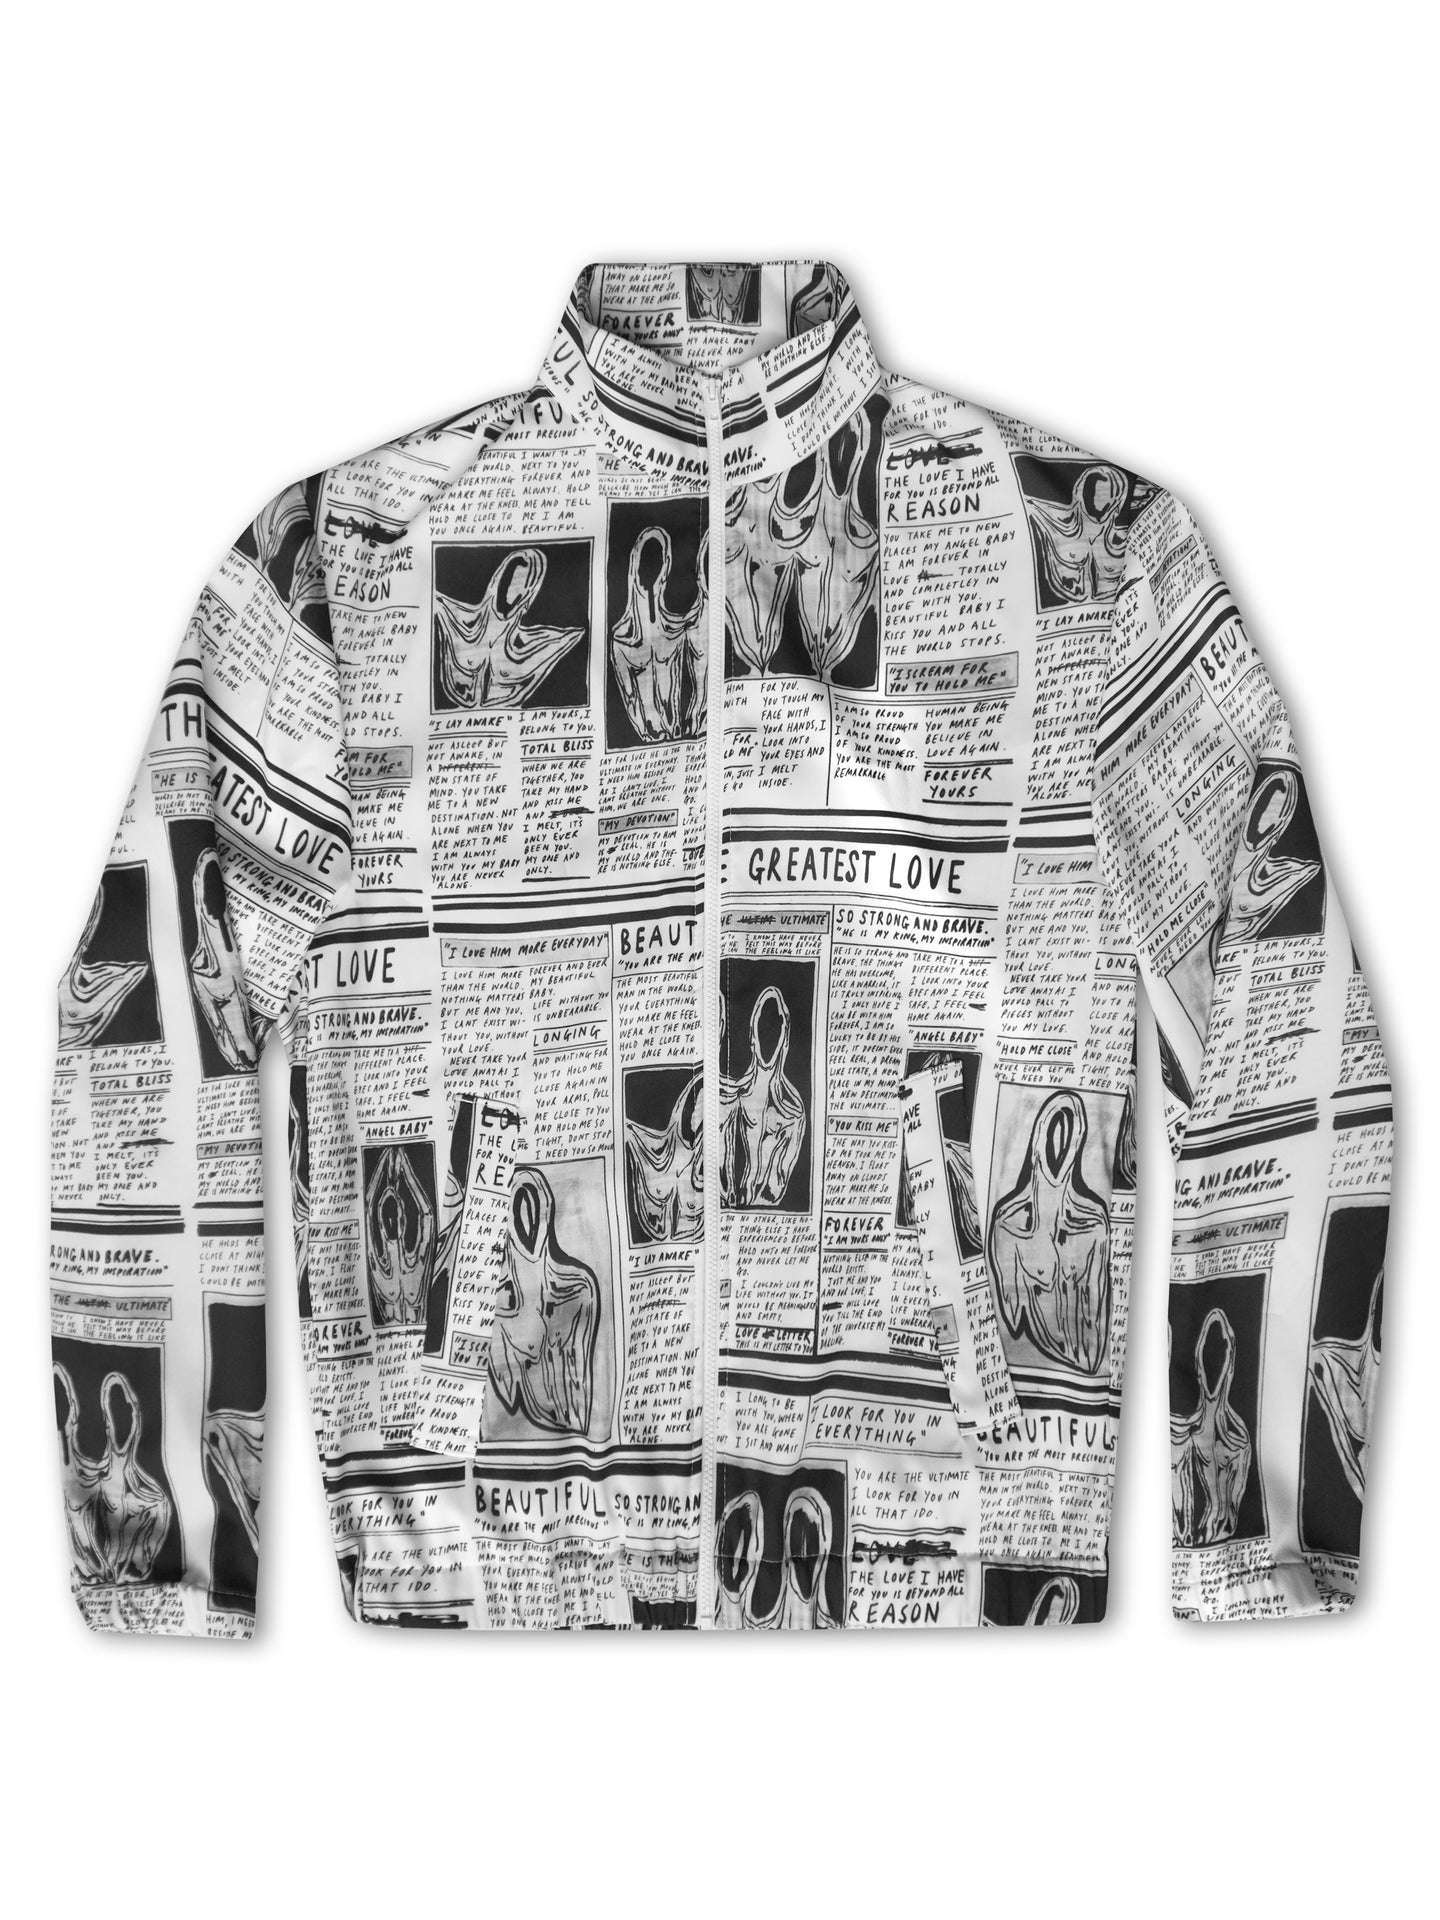 'Greatest Love' Diary Track Jacket - Patrick Church